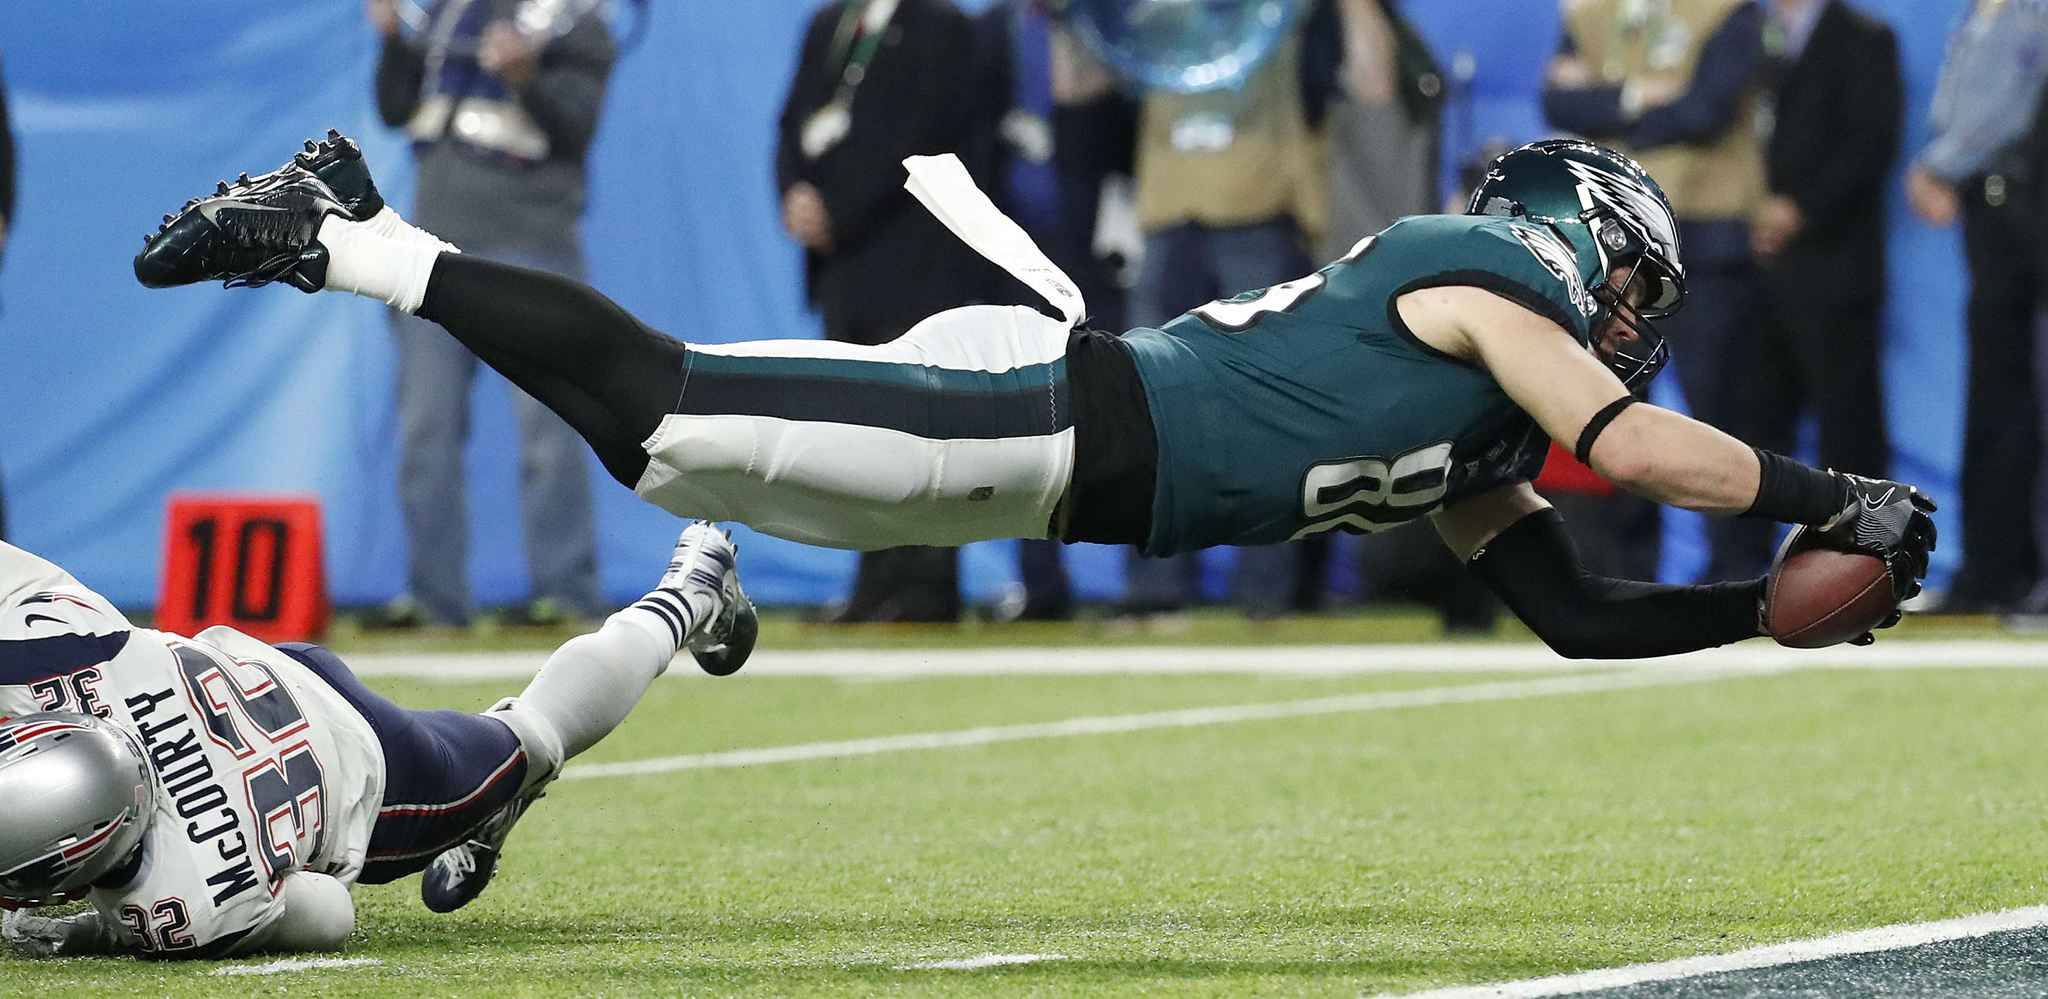 Philadelphia Eagles' Zach Ertz catches a touchdown pass during the second half of the NFL Super Bowl 52 football game against the New England Patriots Sunday, Feb. 4, 2018, in Minneapolis